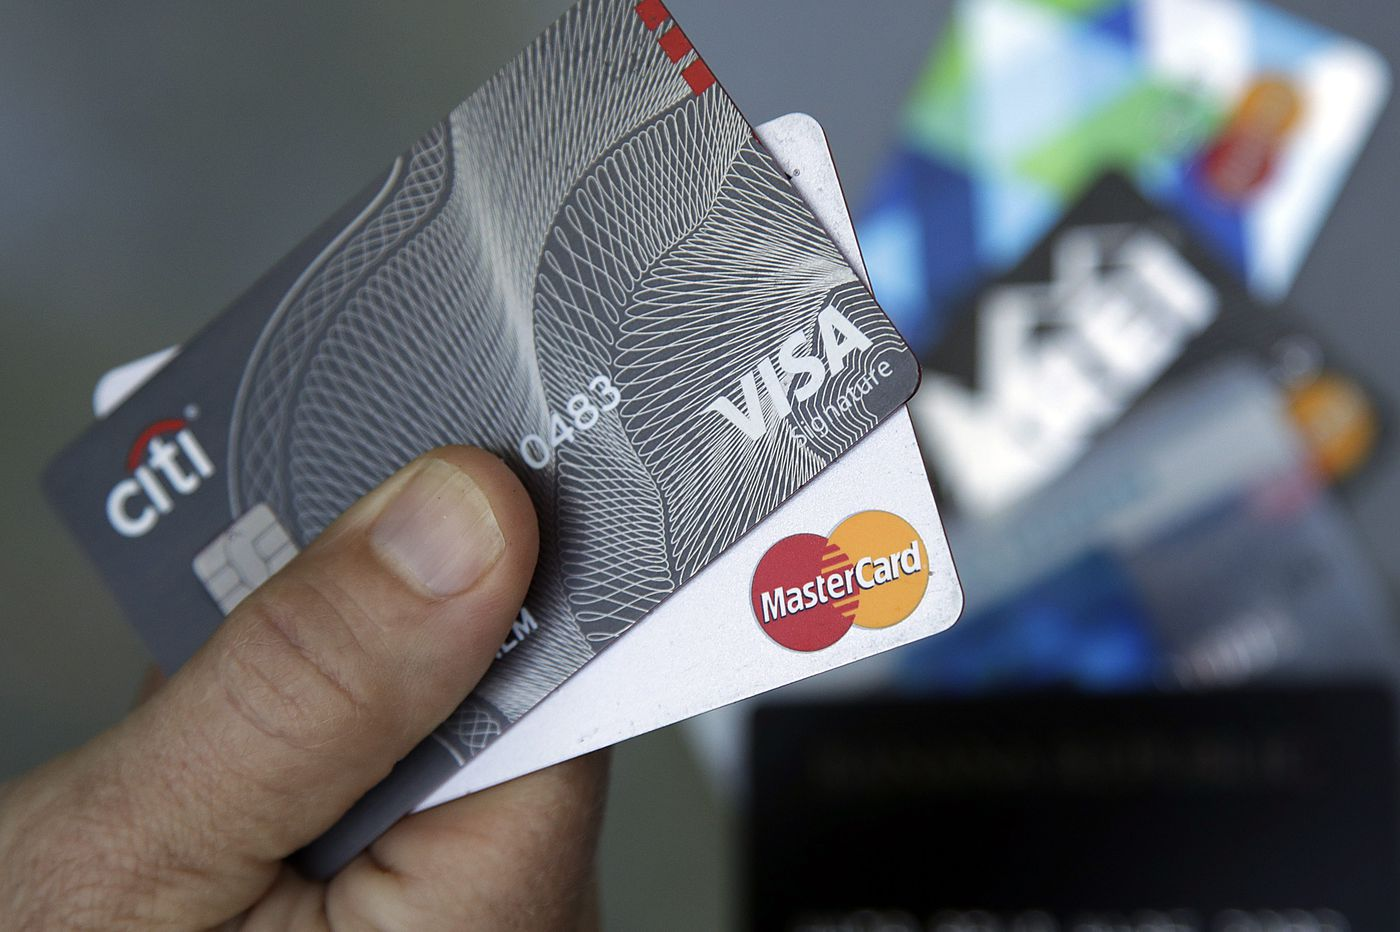 Visa, Mastercard reach $6.2 billion settlement on swipe fees